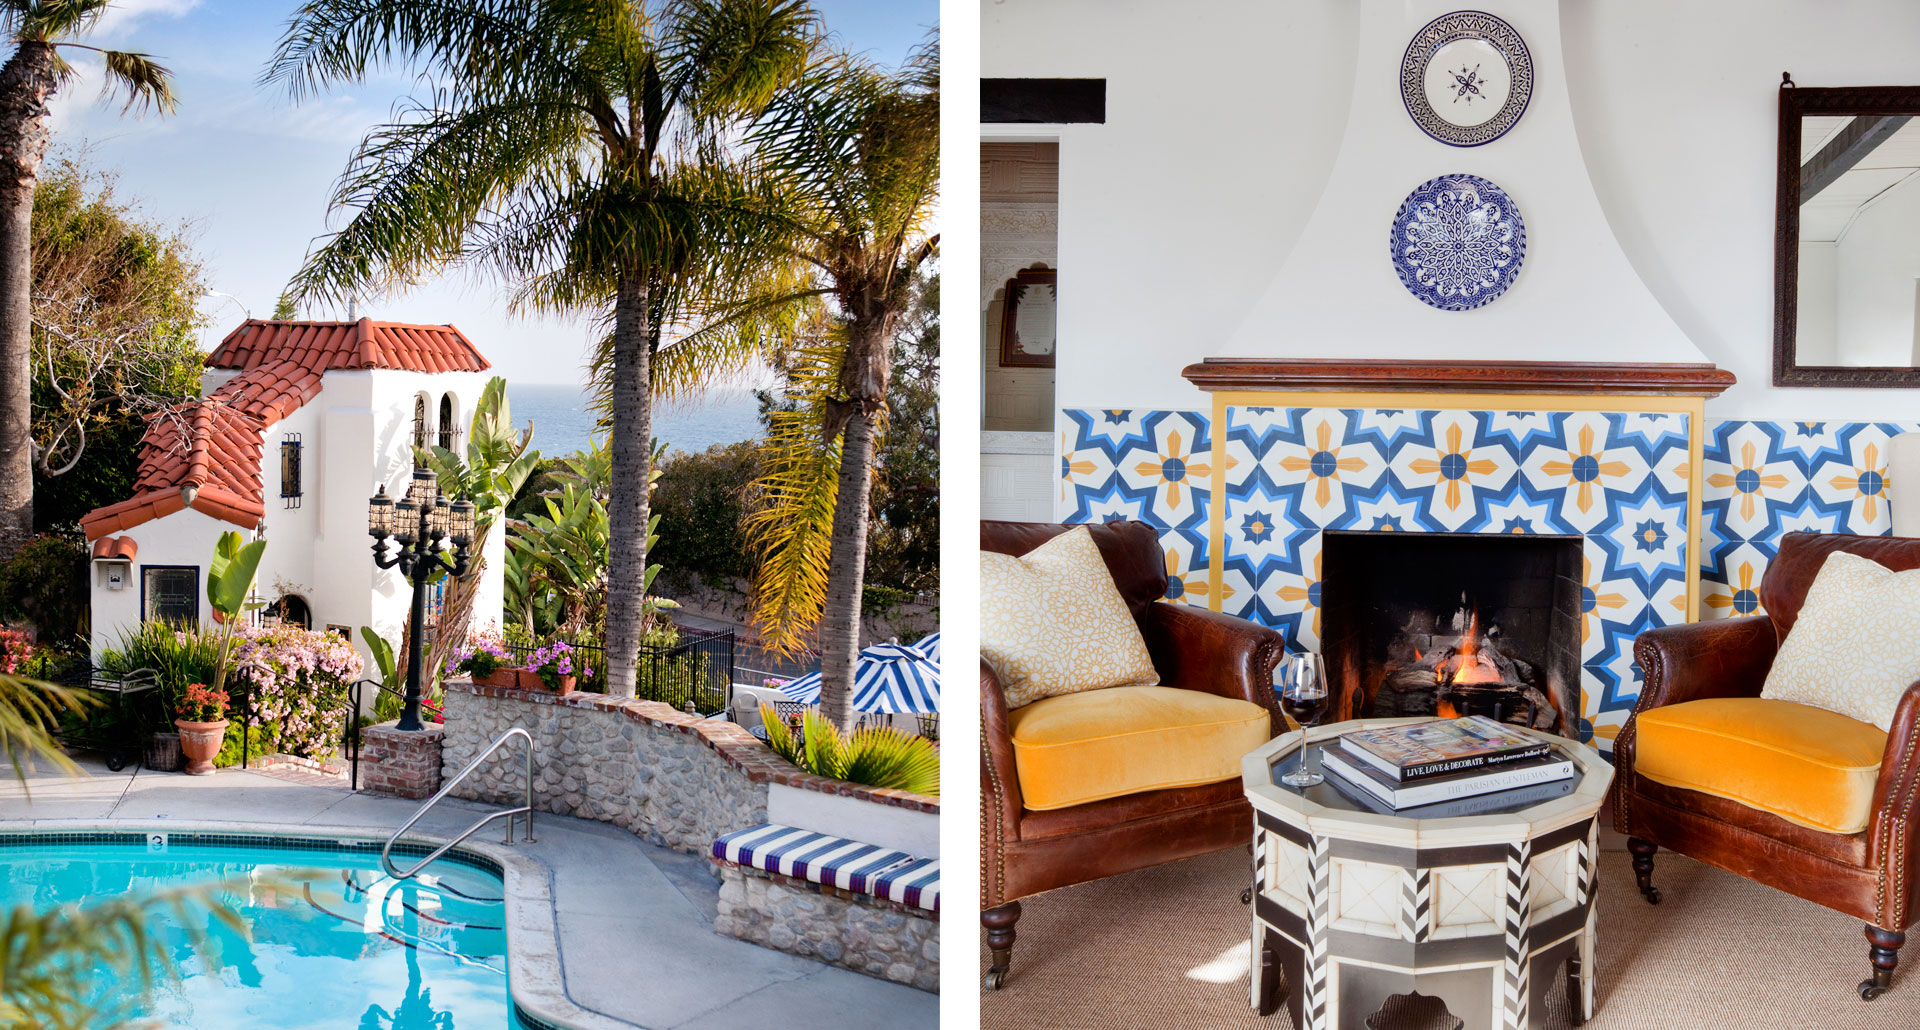 Casa Laguna Hotel & Spa - boutique hotel in Laguna Beach